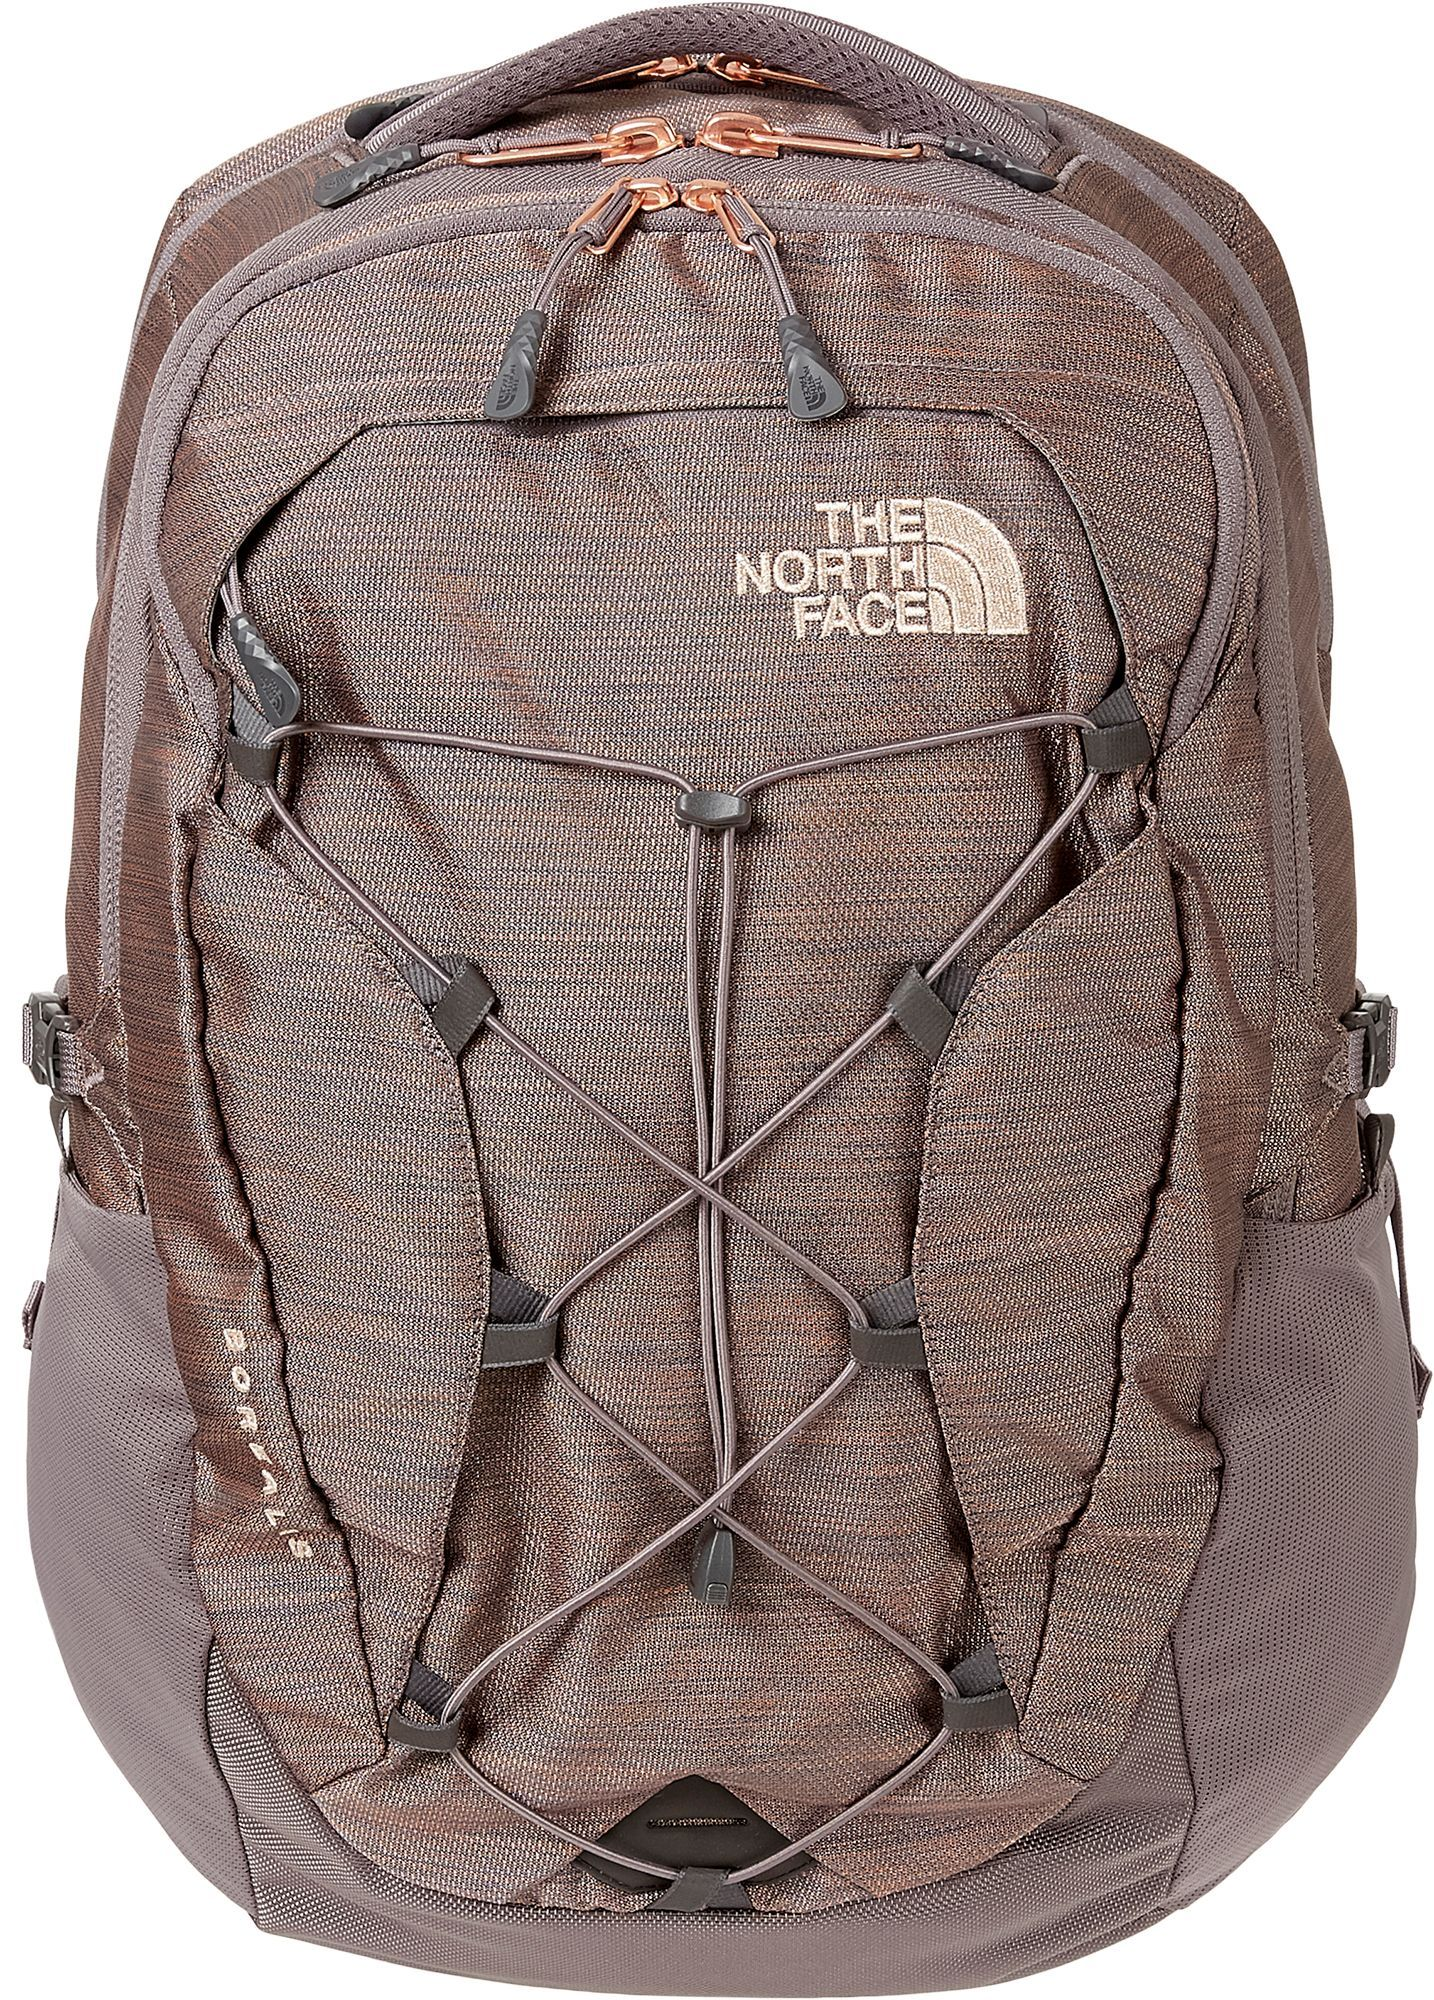 68748ab2c The North Face Women's Borealis Luxe Backpack, Gray in 2019 ...